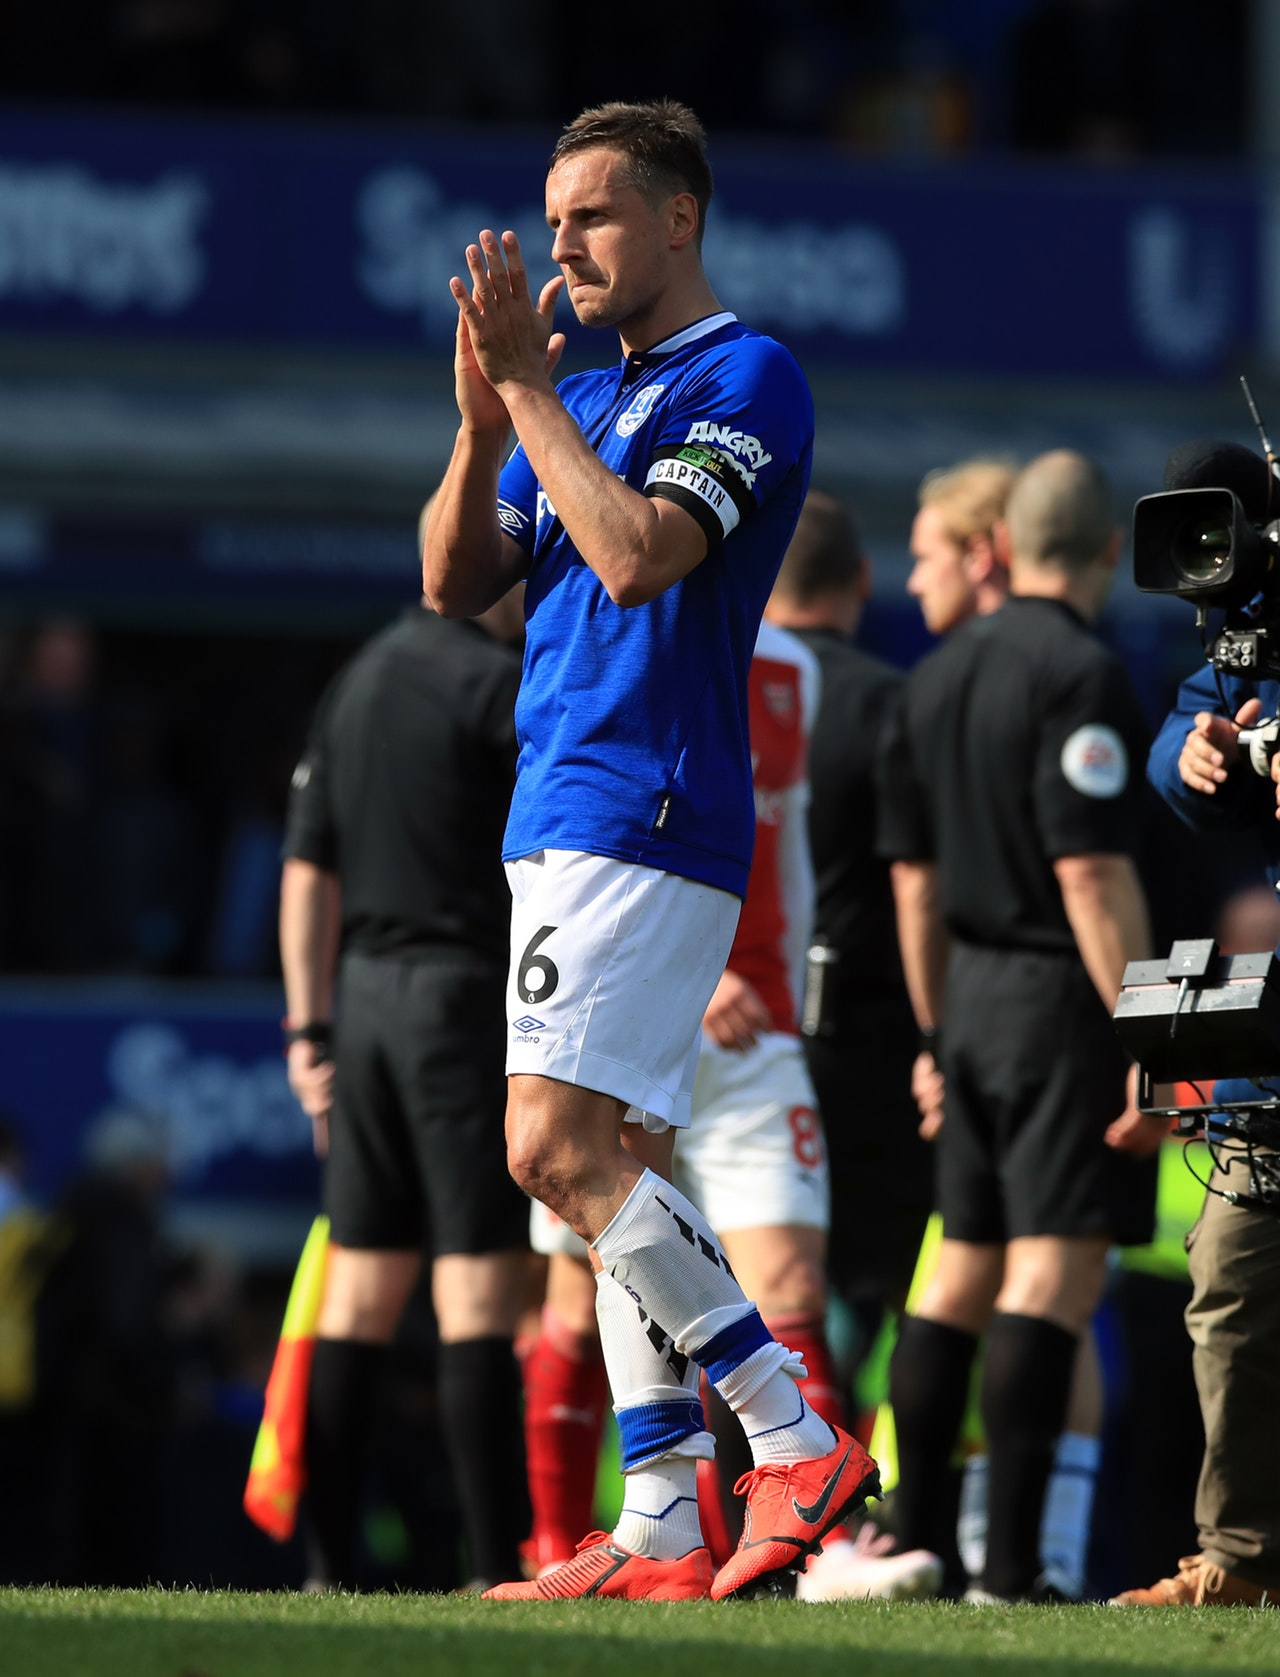 Fans Decide On Who Gets Welcomed Back As Jags Returns To Everton